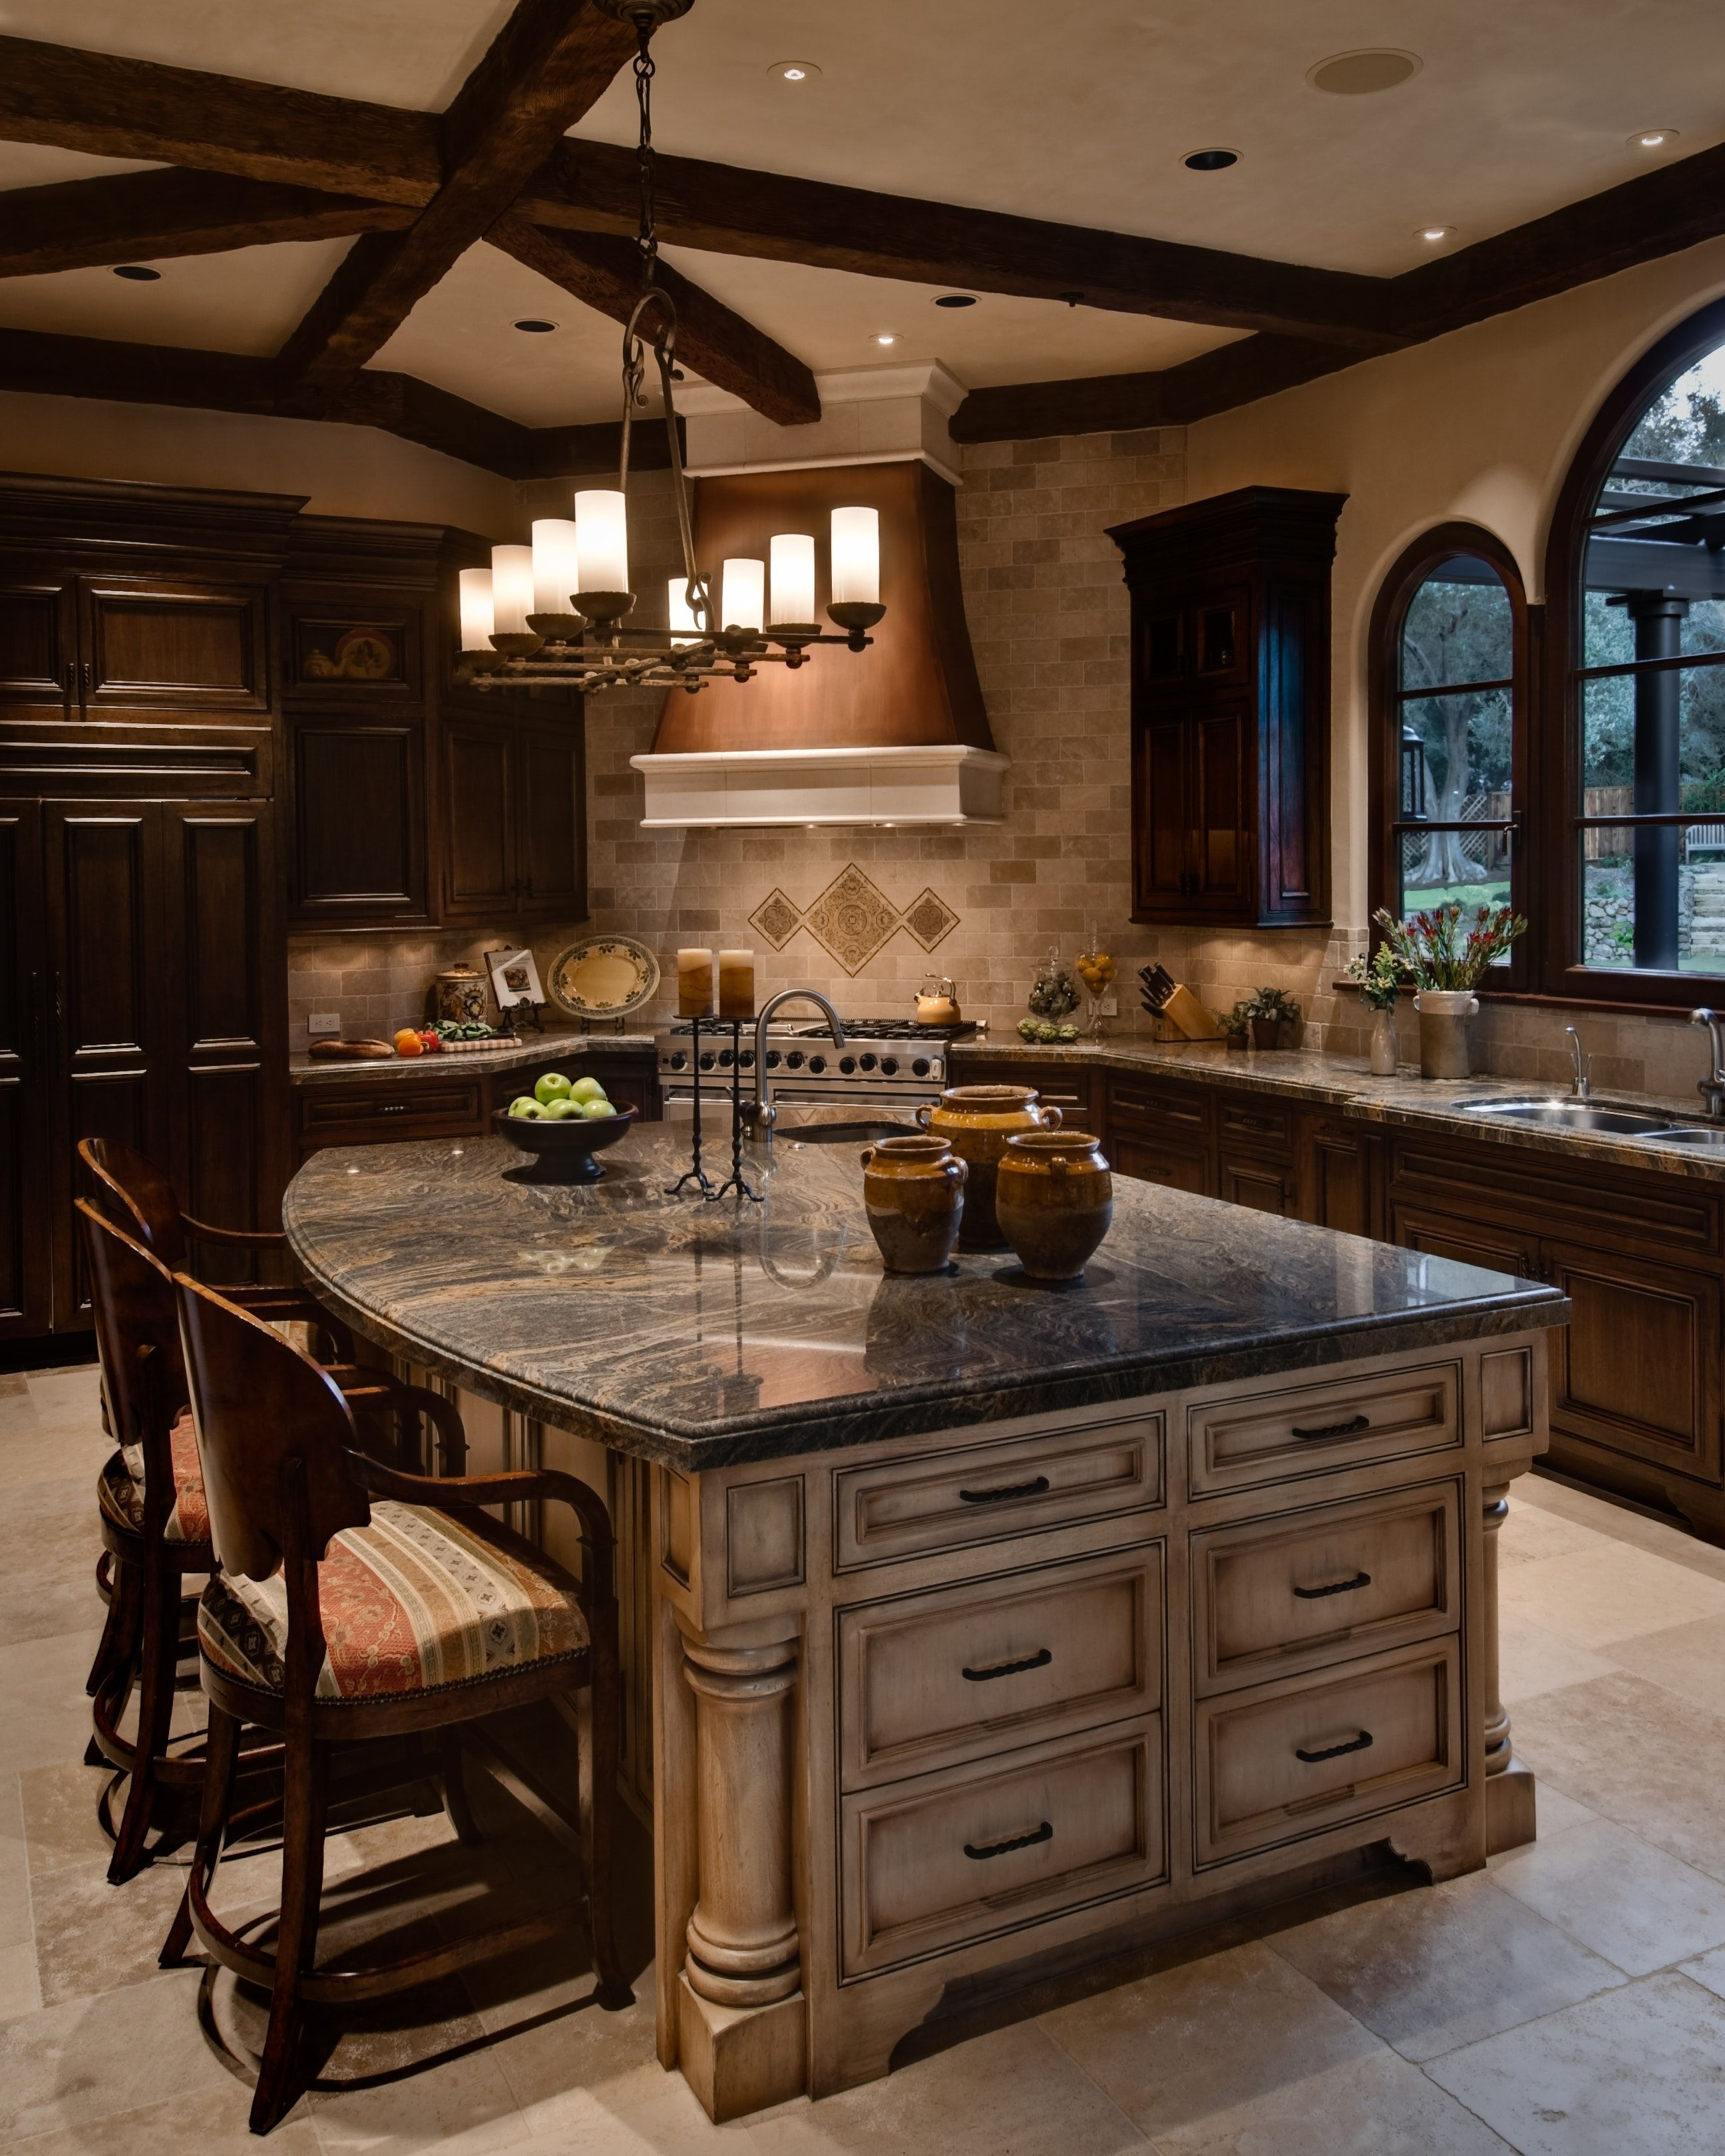 Mediterranean Kitchen features copper hood and large island with